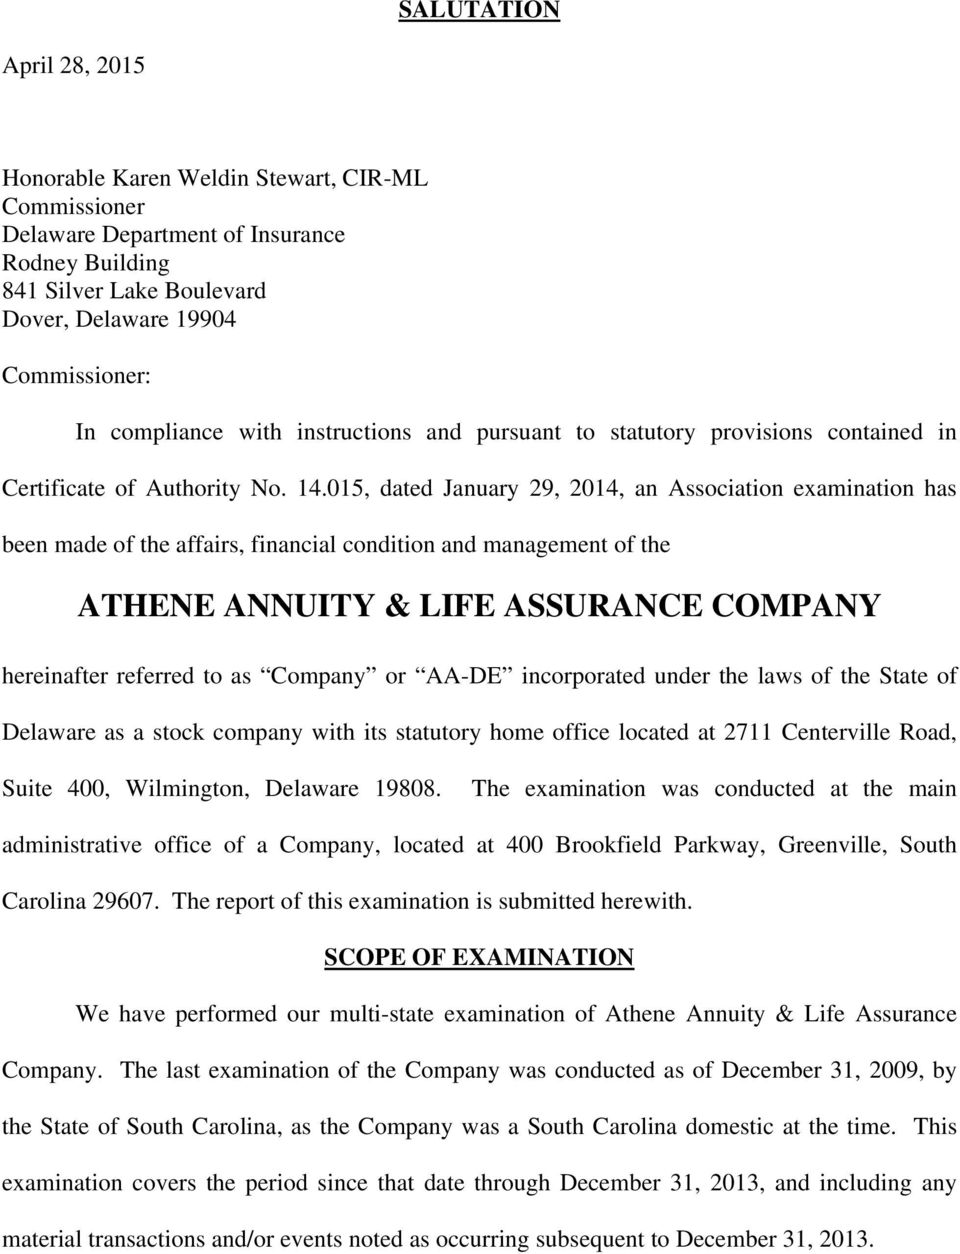 015, dated January 29, 2014, an Association examination has been made of the affairs, financial condition and management of the ATHENE ANNUITY & LIFE ASSURANCE COMPANY hereinafter referred to as